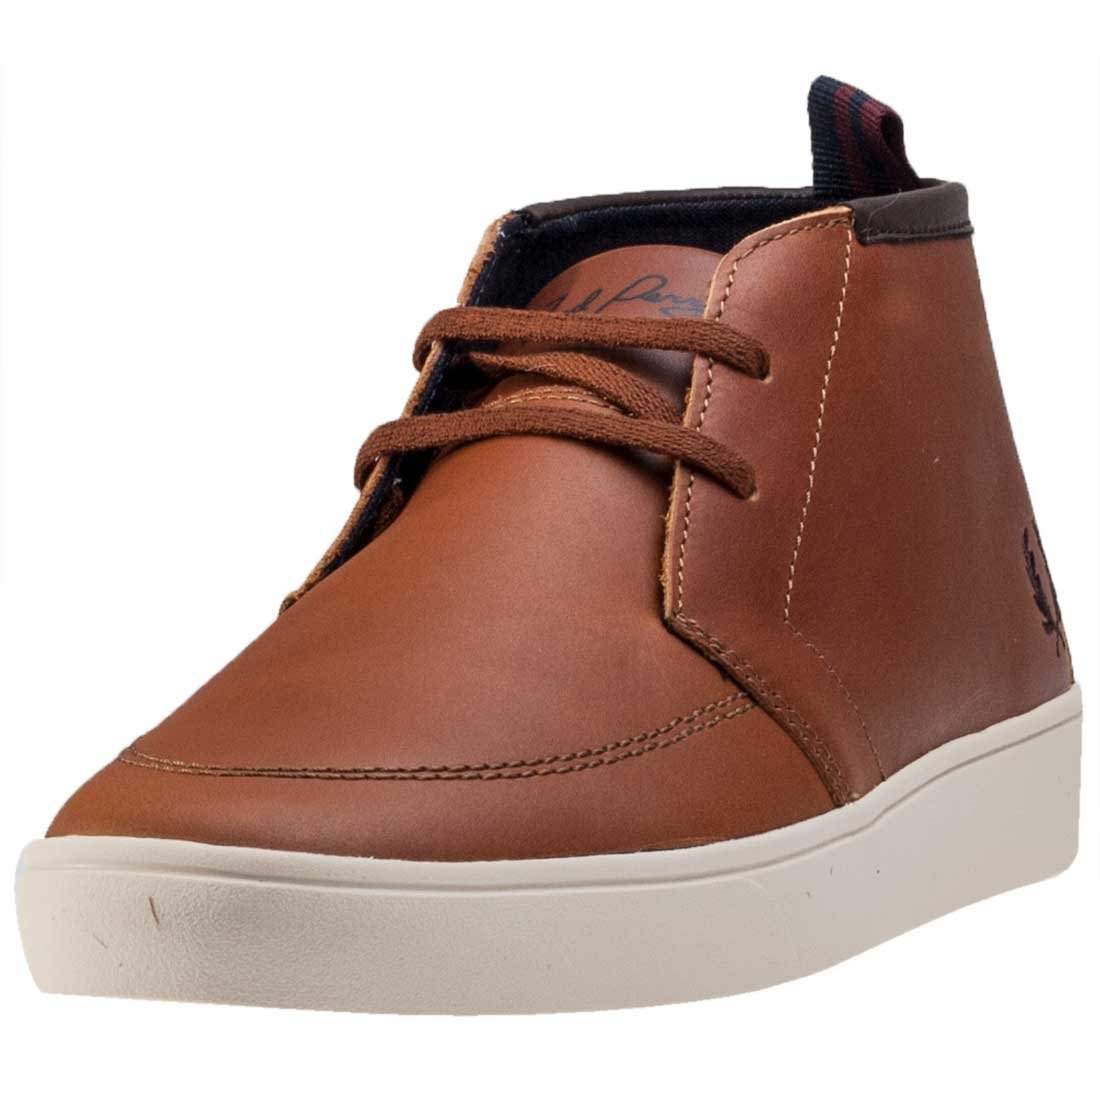 Frot Perry Shields Mid Leather Tan